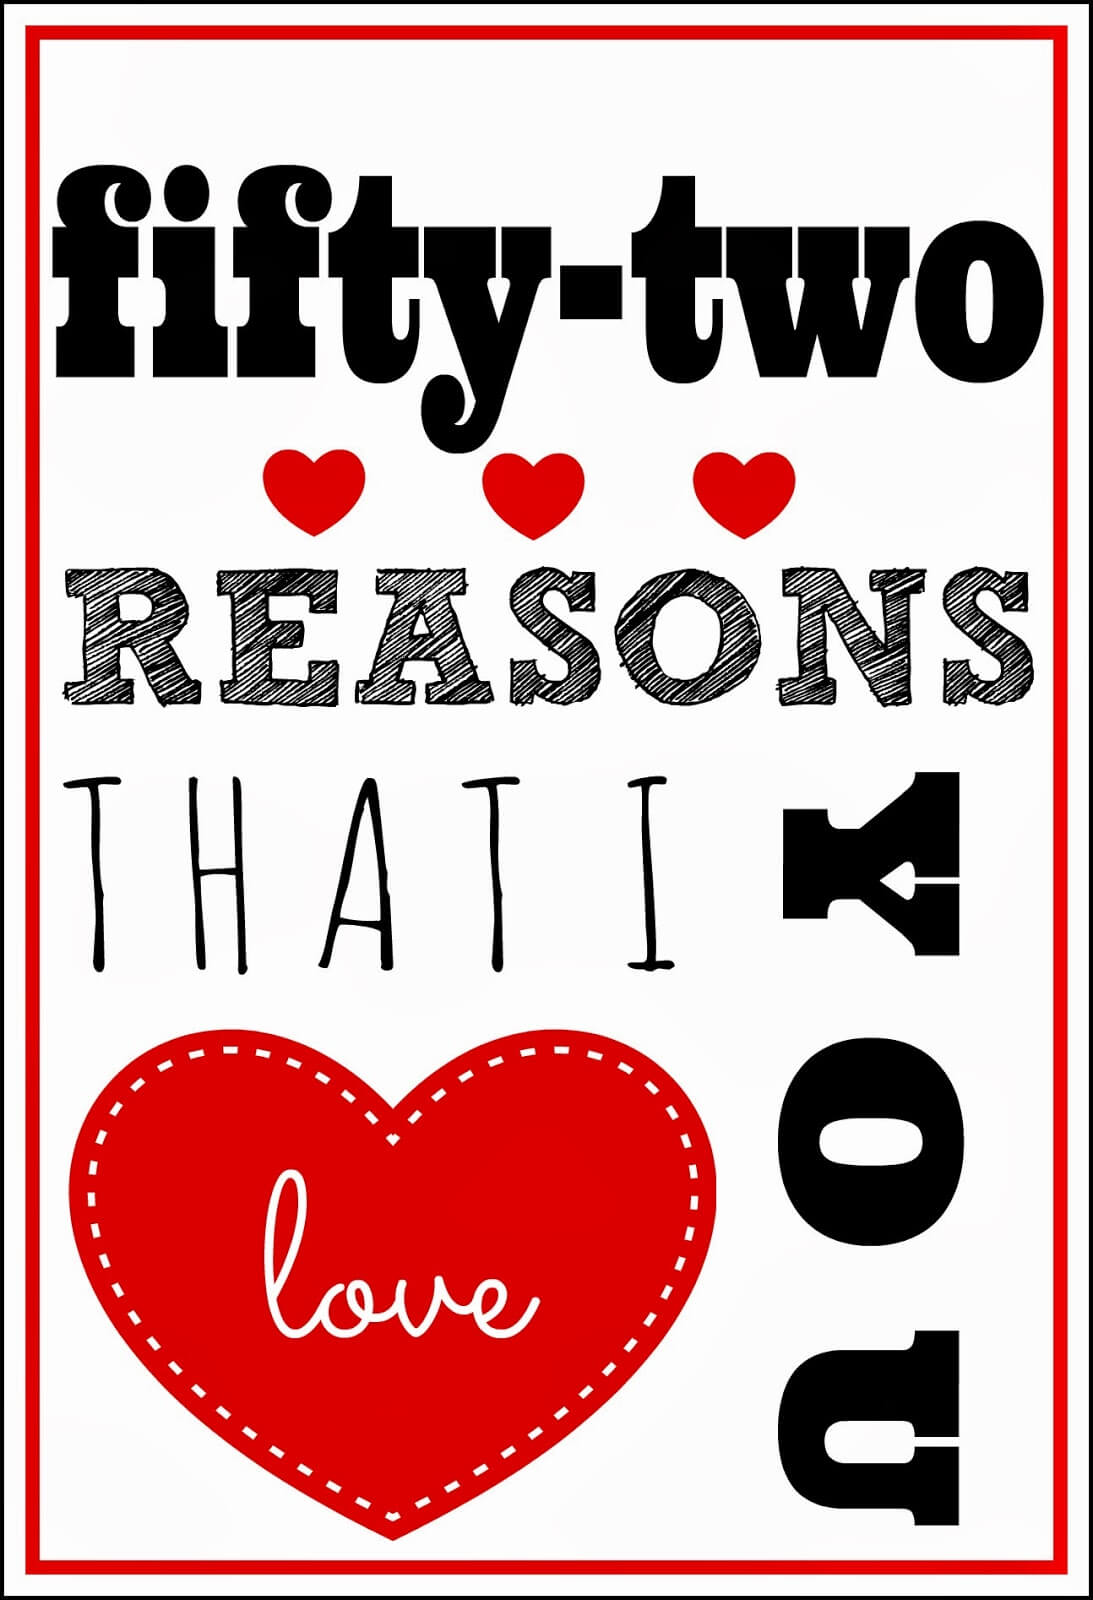 52 Reasons I Love You Template Free ] – You Will Get A Pertaining To 52 Reasons Why I Love You Cards Templates Free